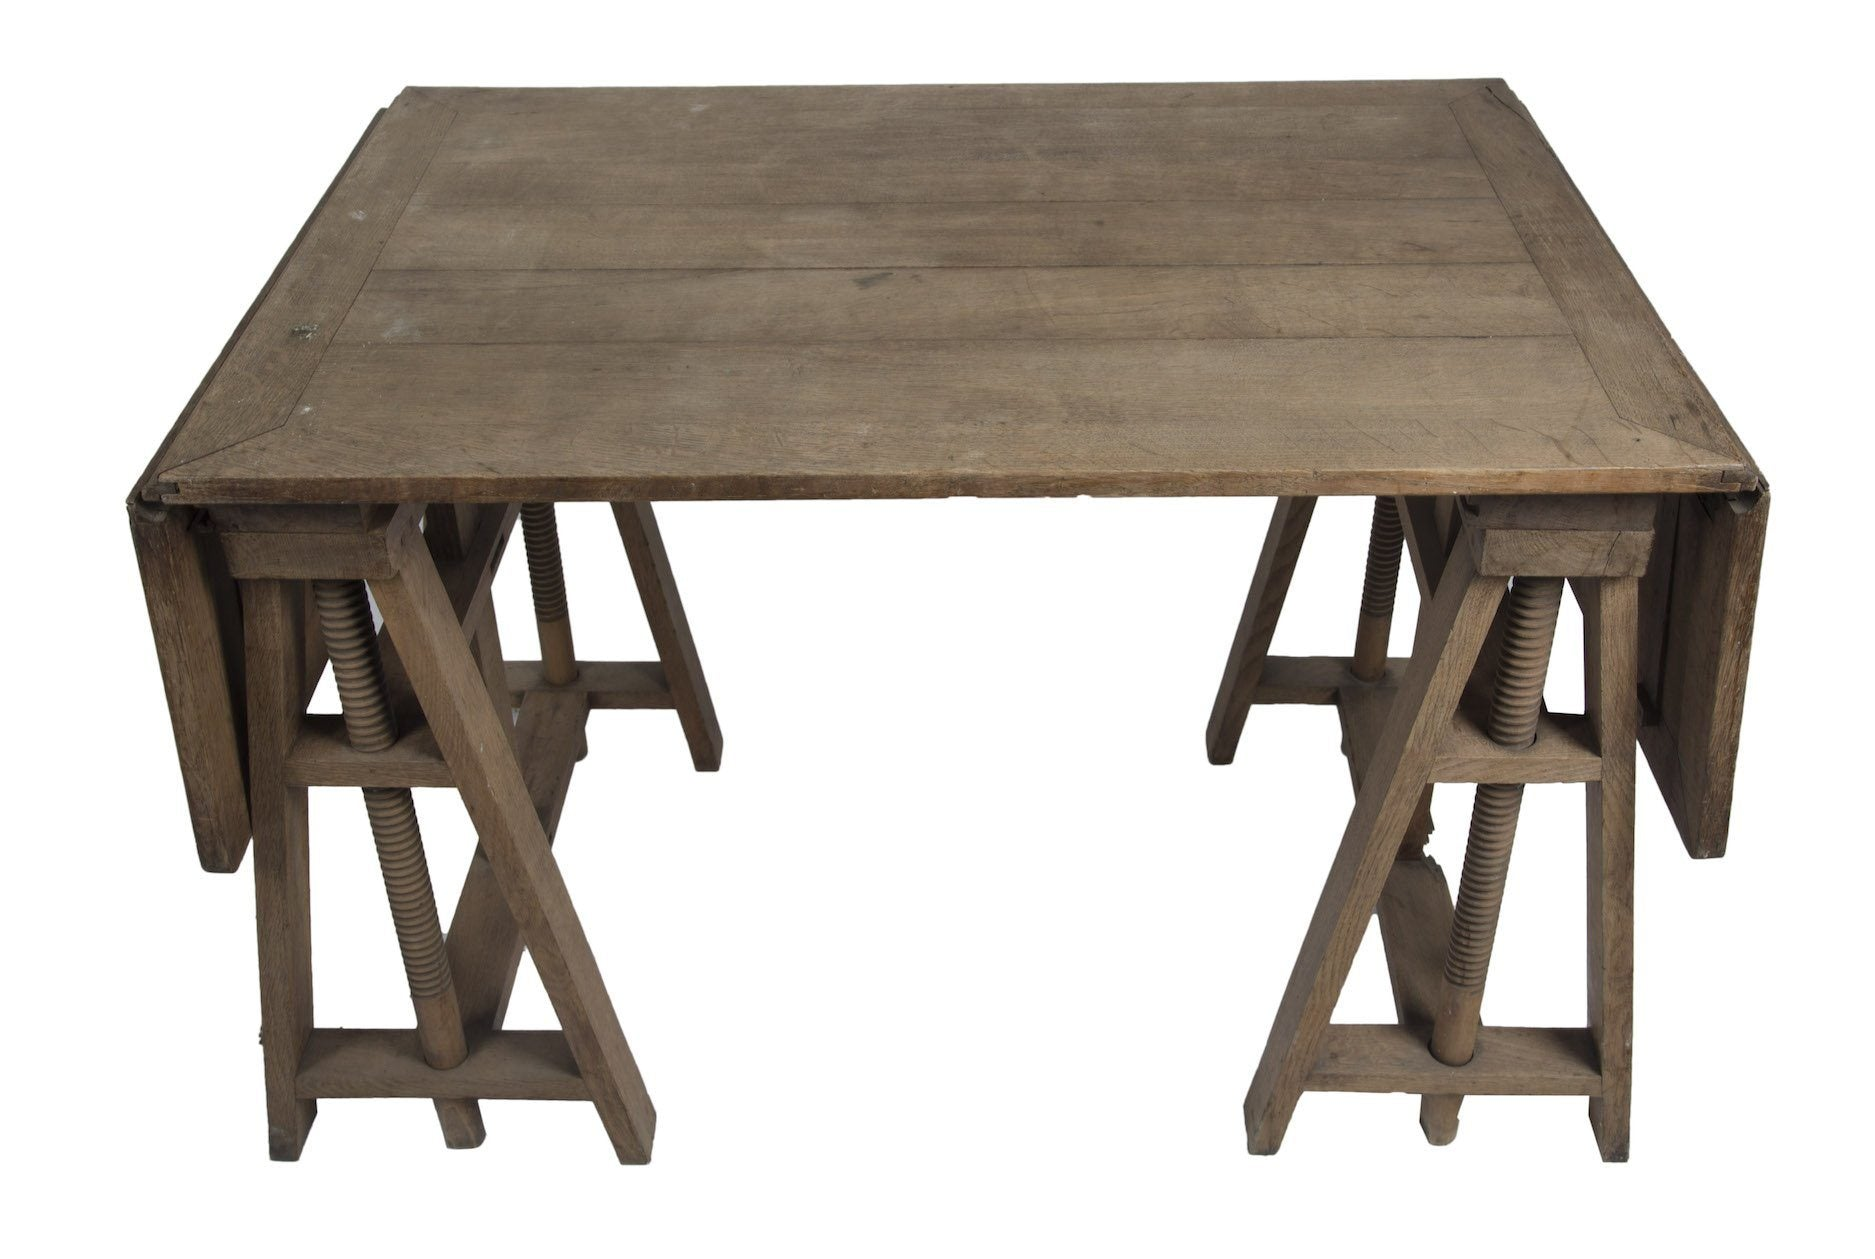 Early 20th Century Vernacular Trestle Table - A Modern Grand Tour